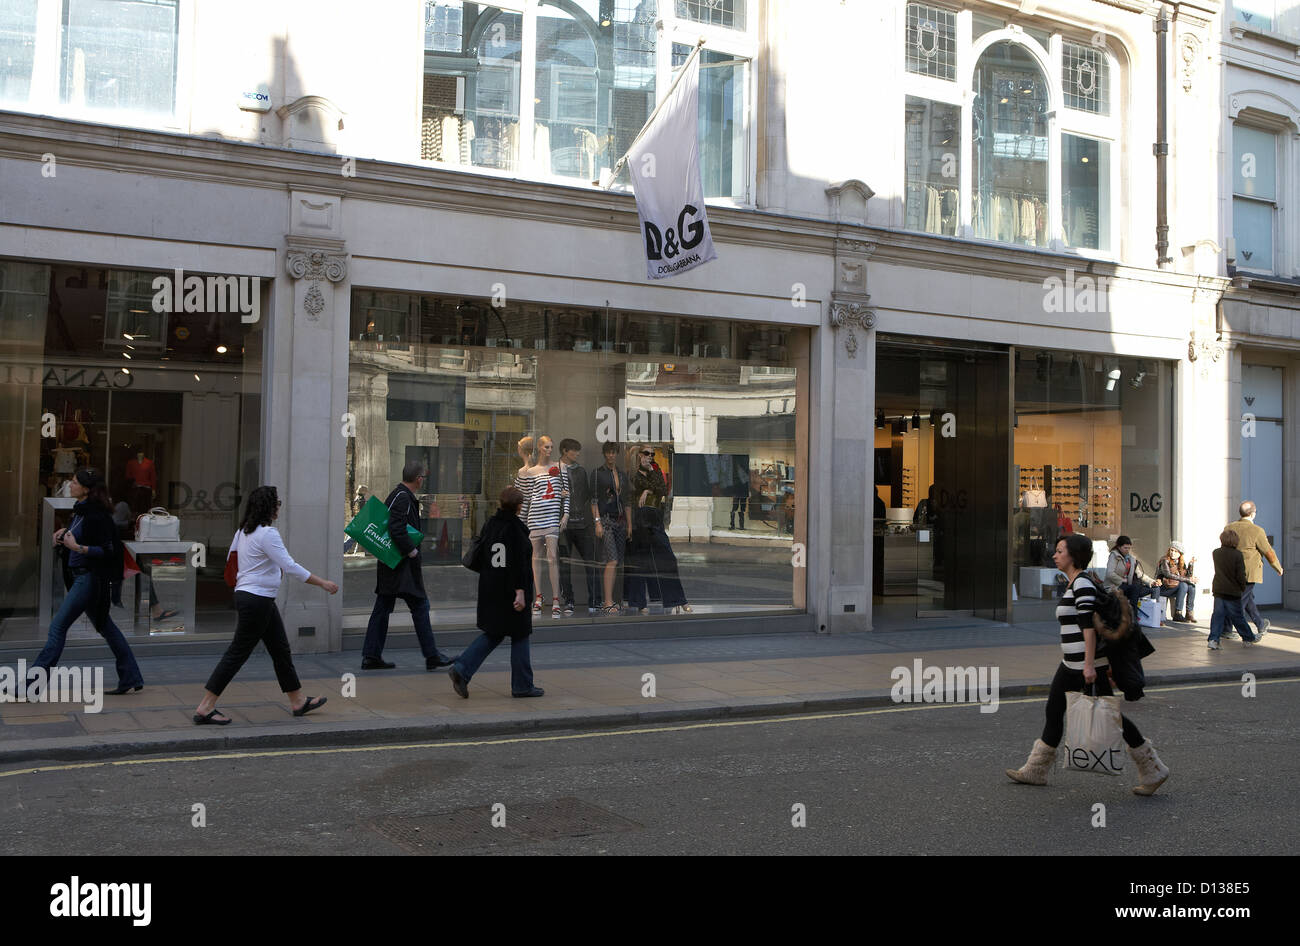 London, United Kingdom, a Nobel boutique of the brand Dolce and Gabbana - Stock Image